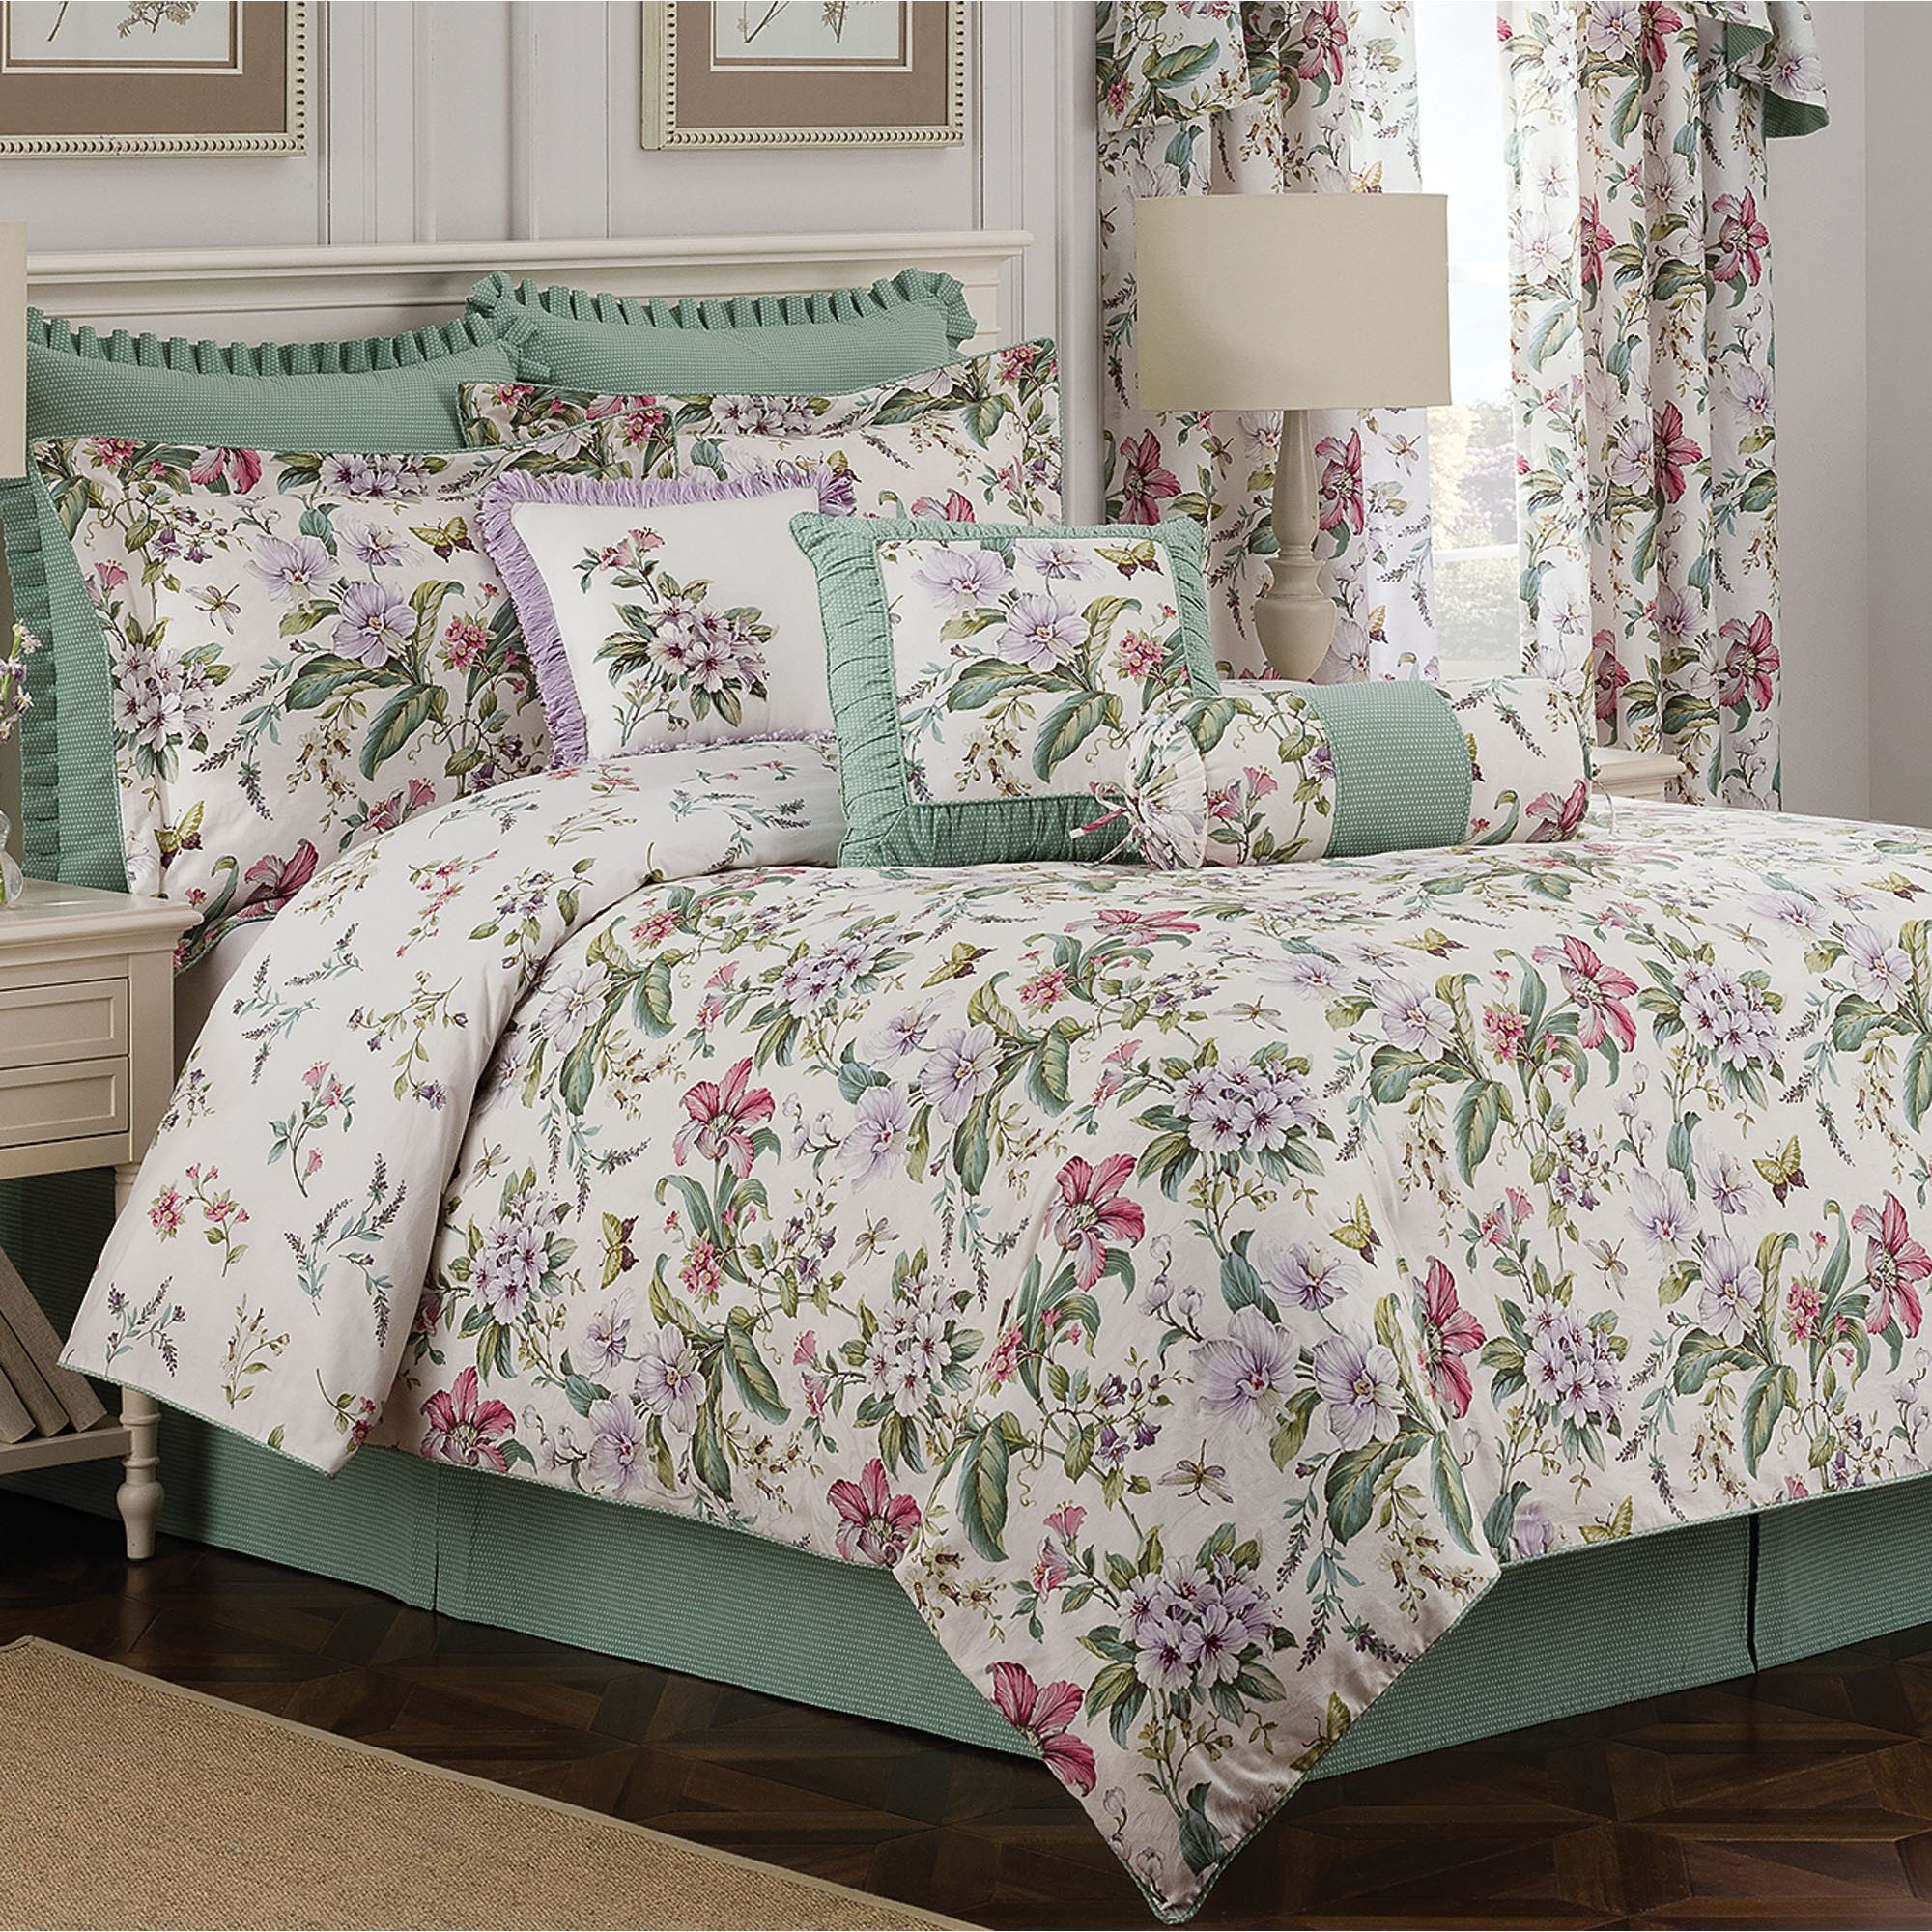 comforter put set how lodge ecrins to floral gray